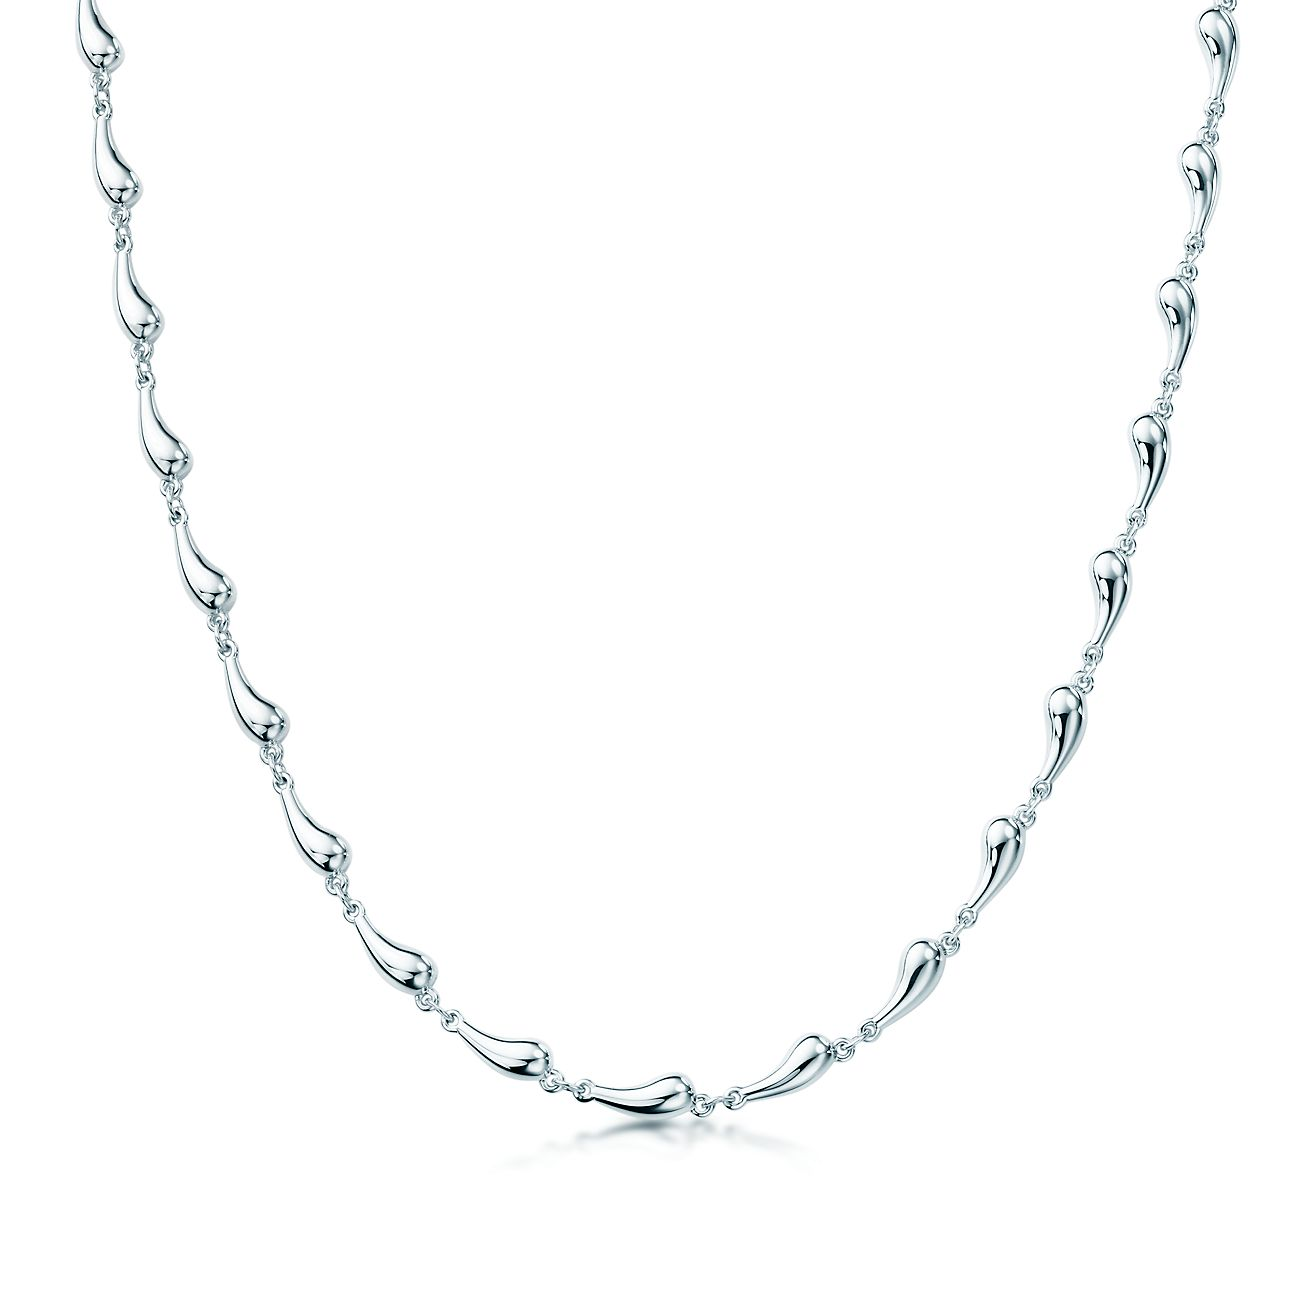 Elsa peretti teardrop necklace in sterling silver tiffany co elsa perettiteardrop necklace mozeypictures Choice Image